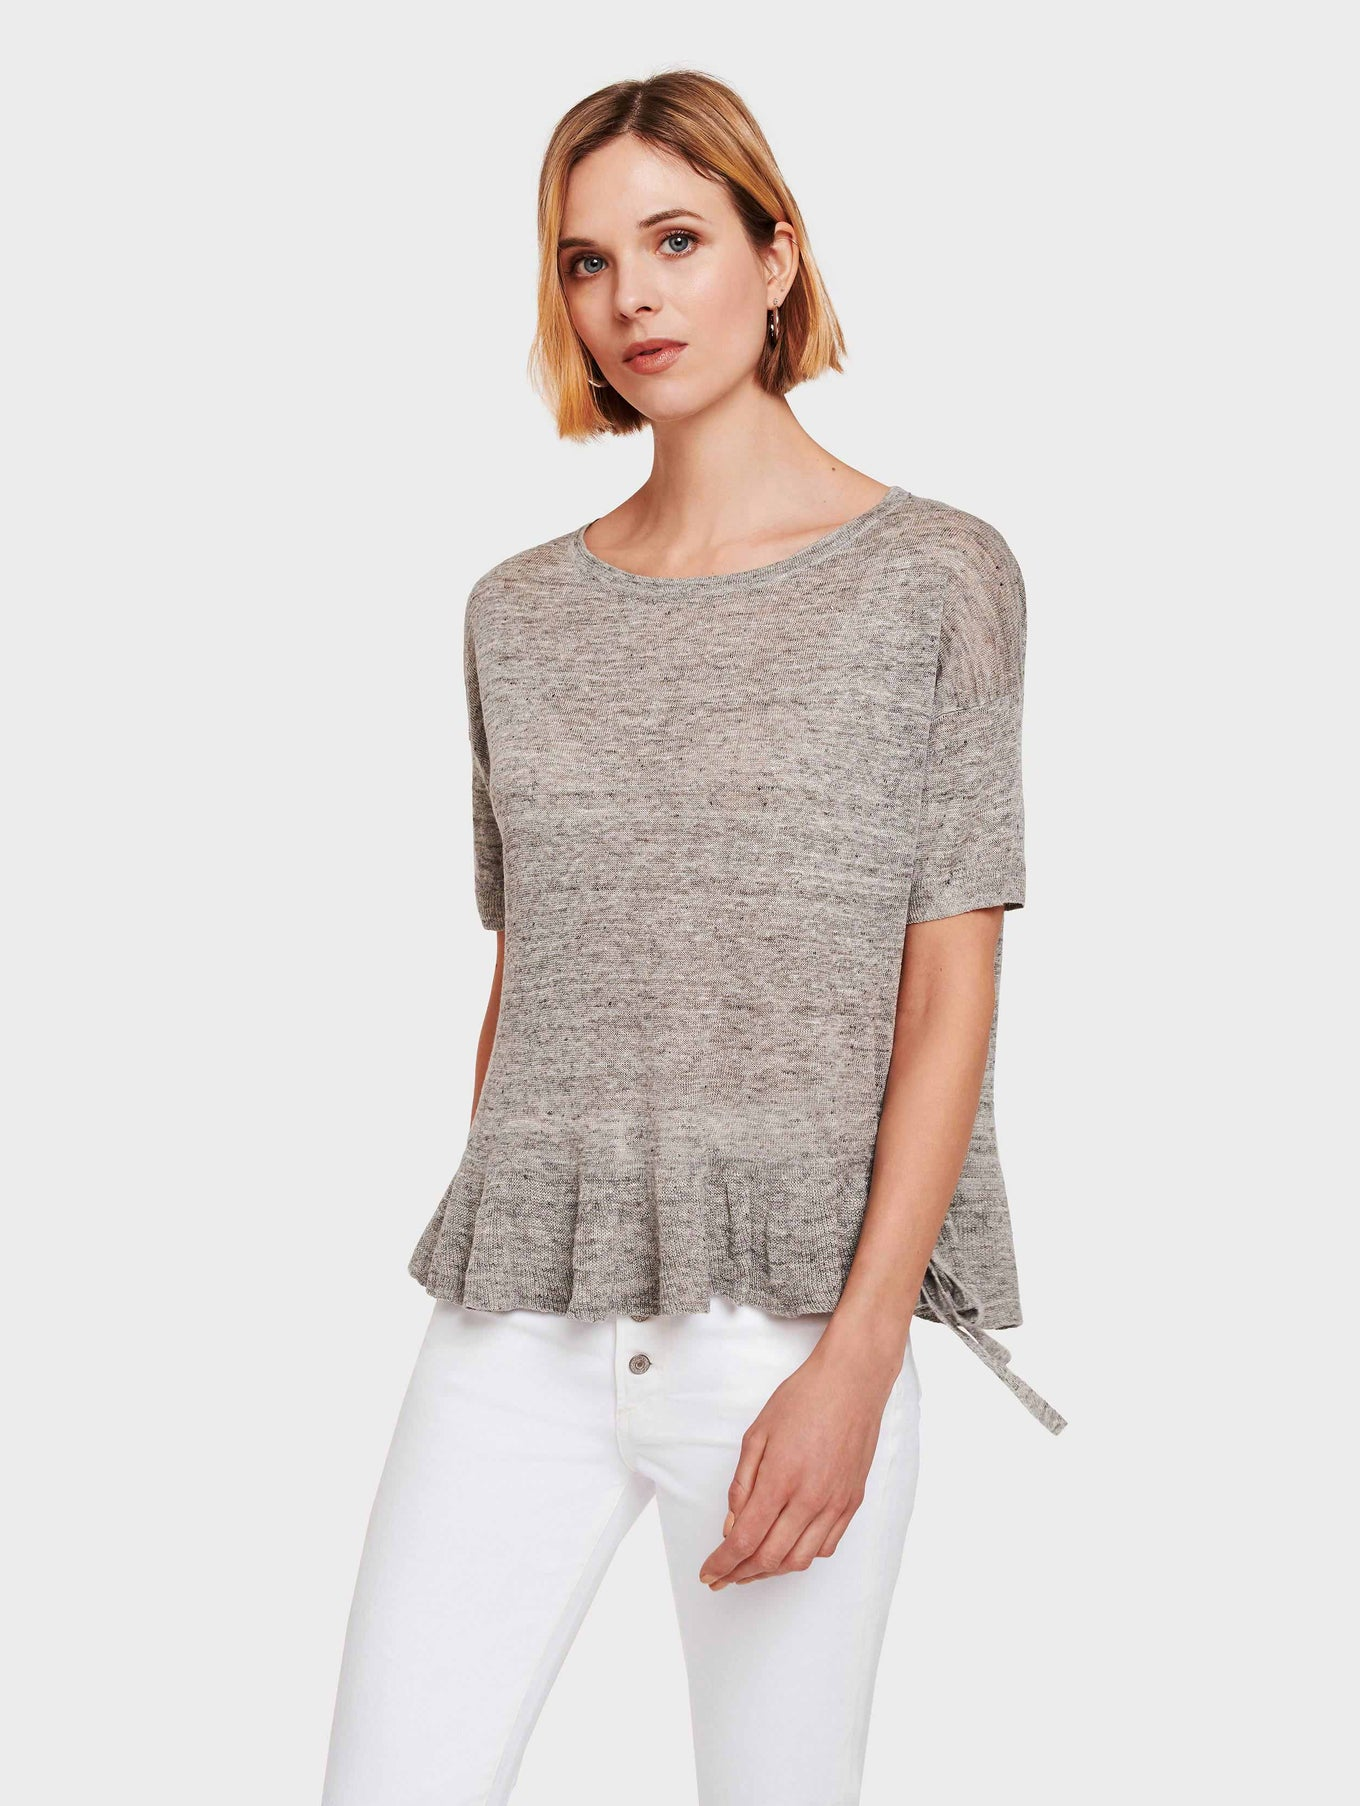 Linen Drawcord Ruffle Tee - Shadow Heather - Image 1